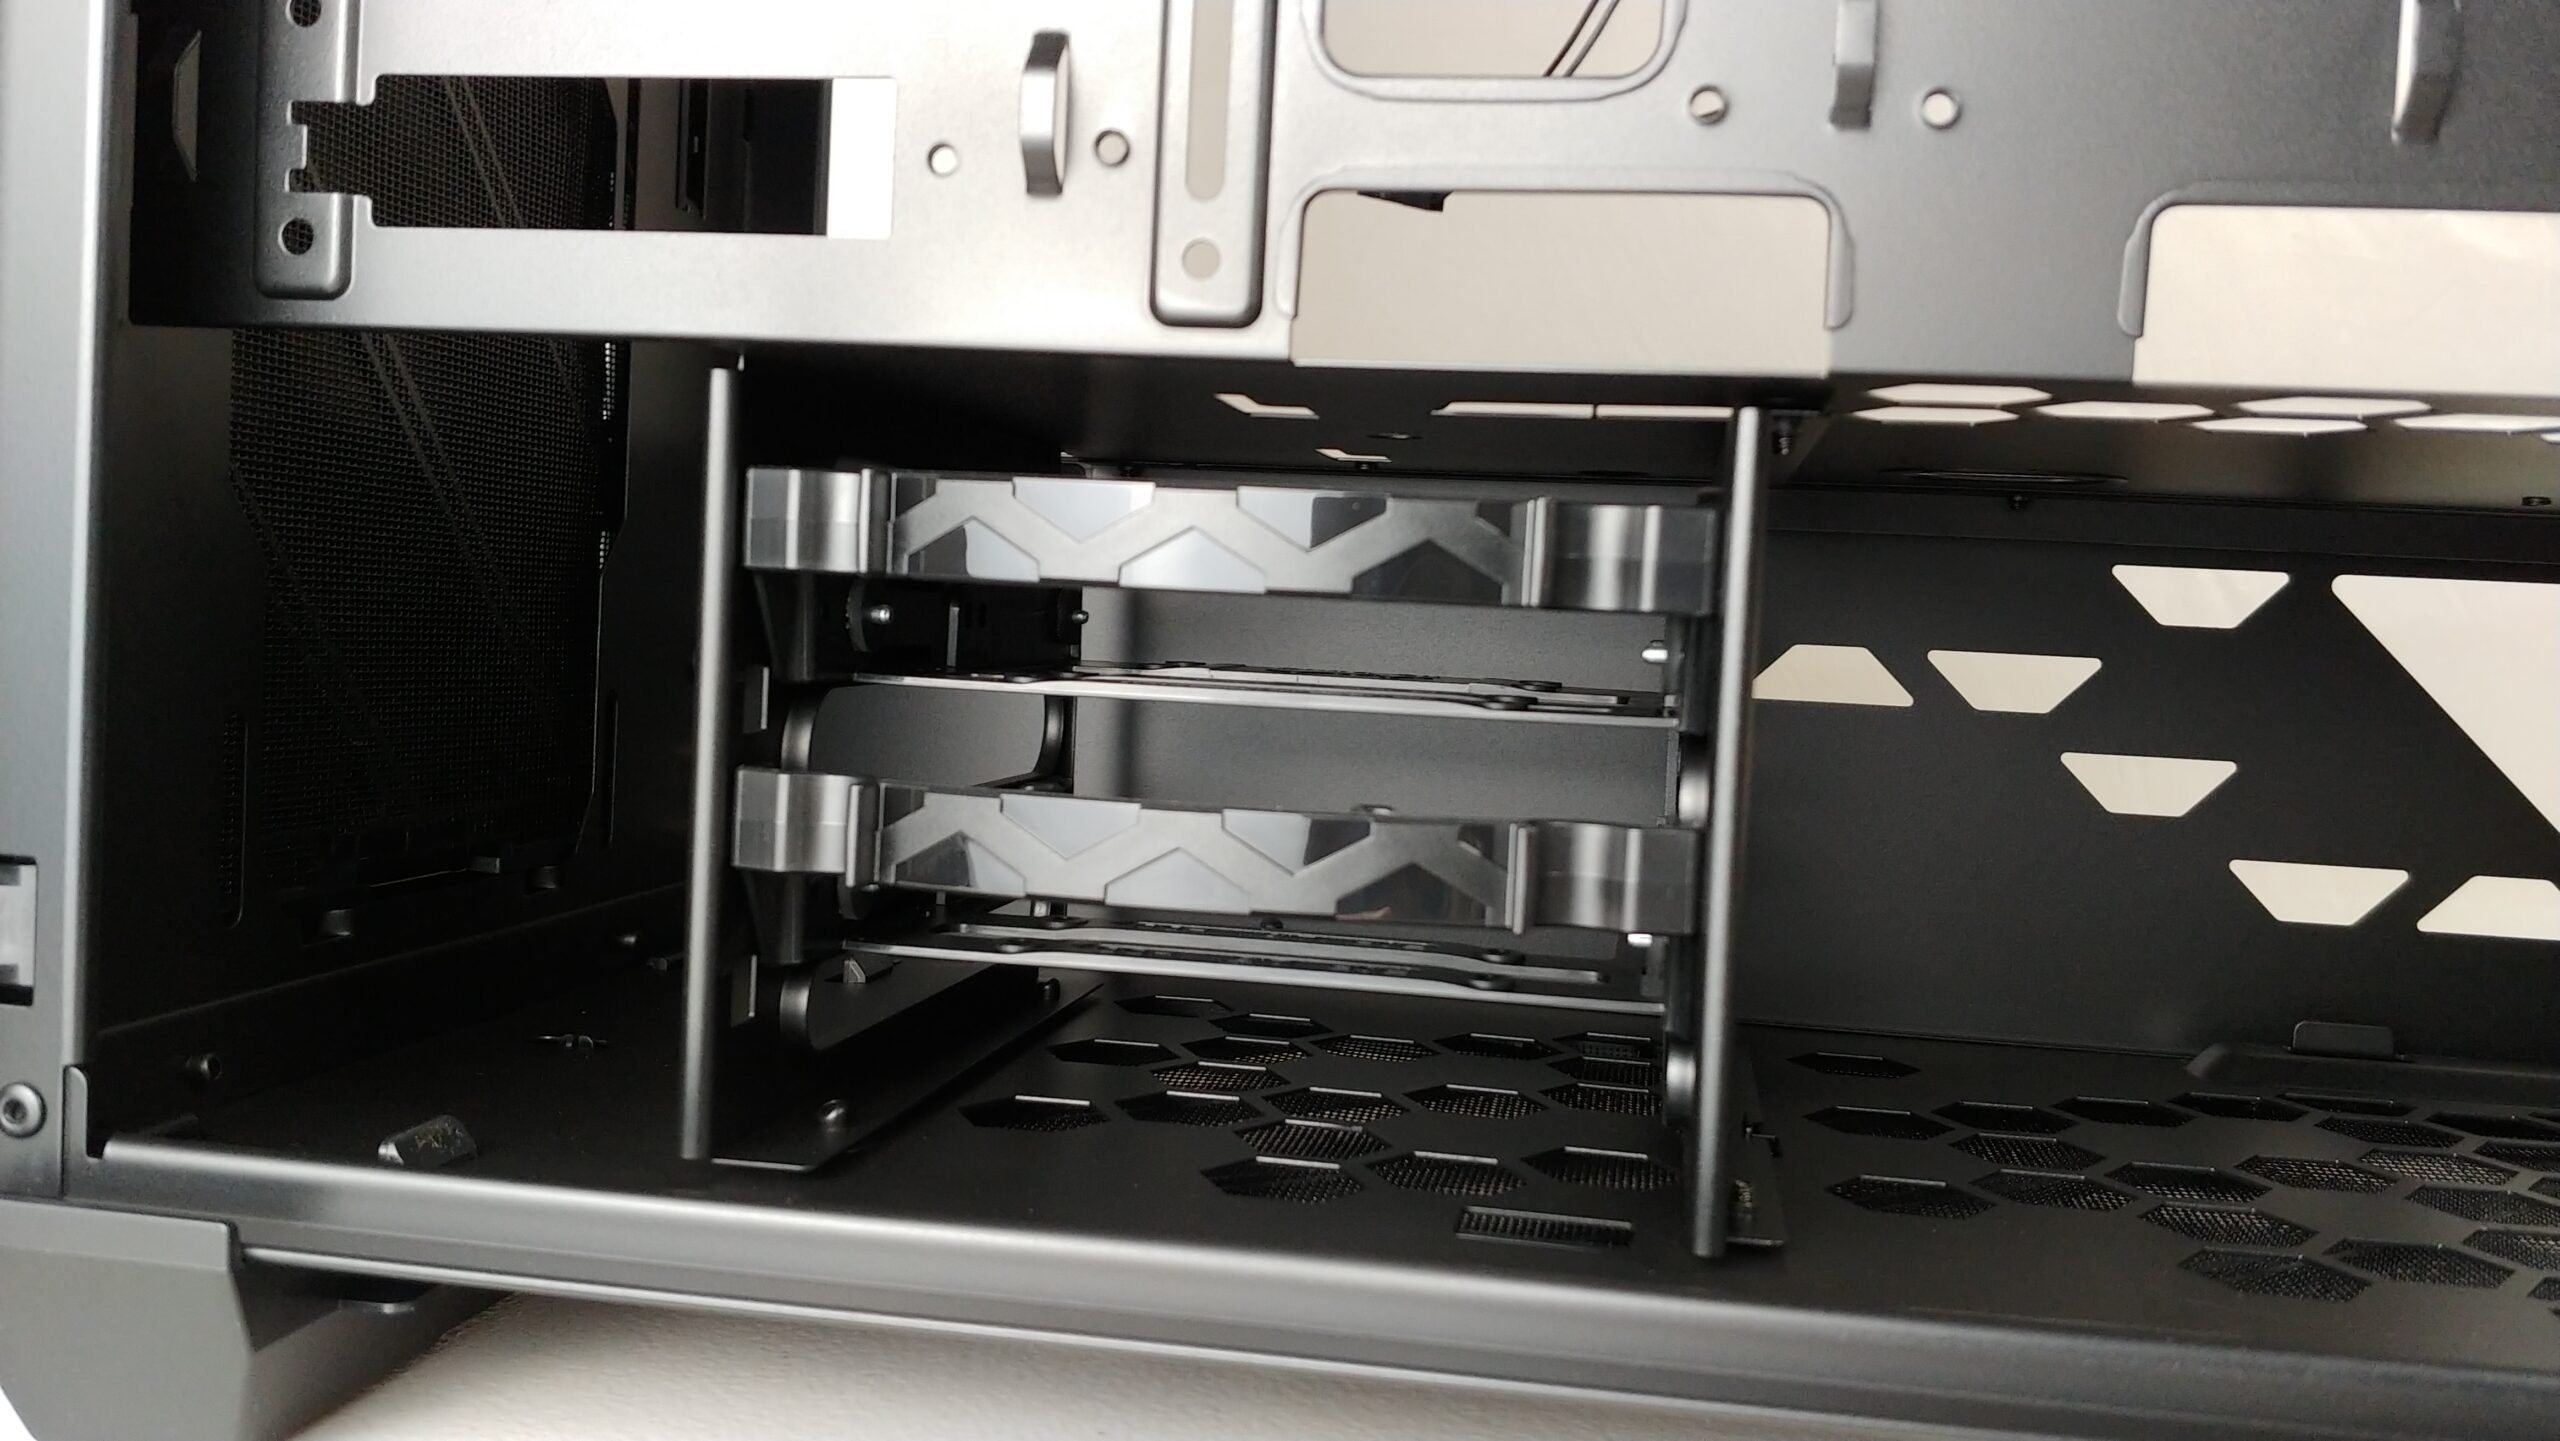 Close view of the 3.5-inch drive bay.